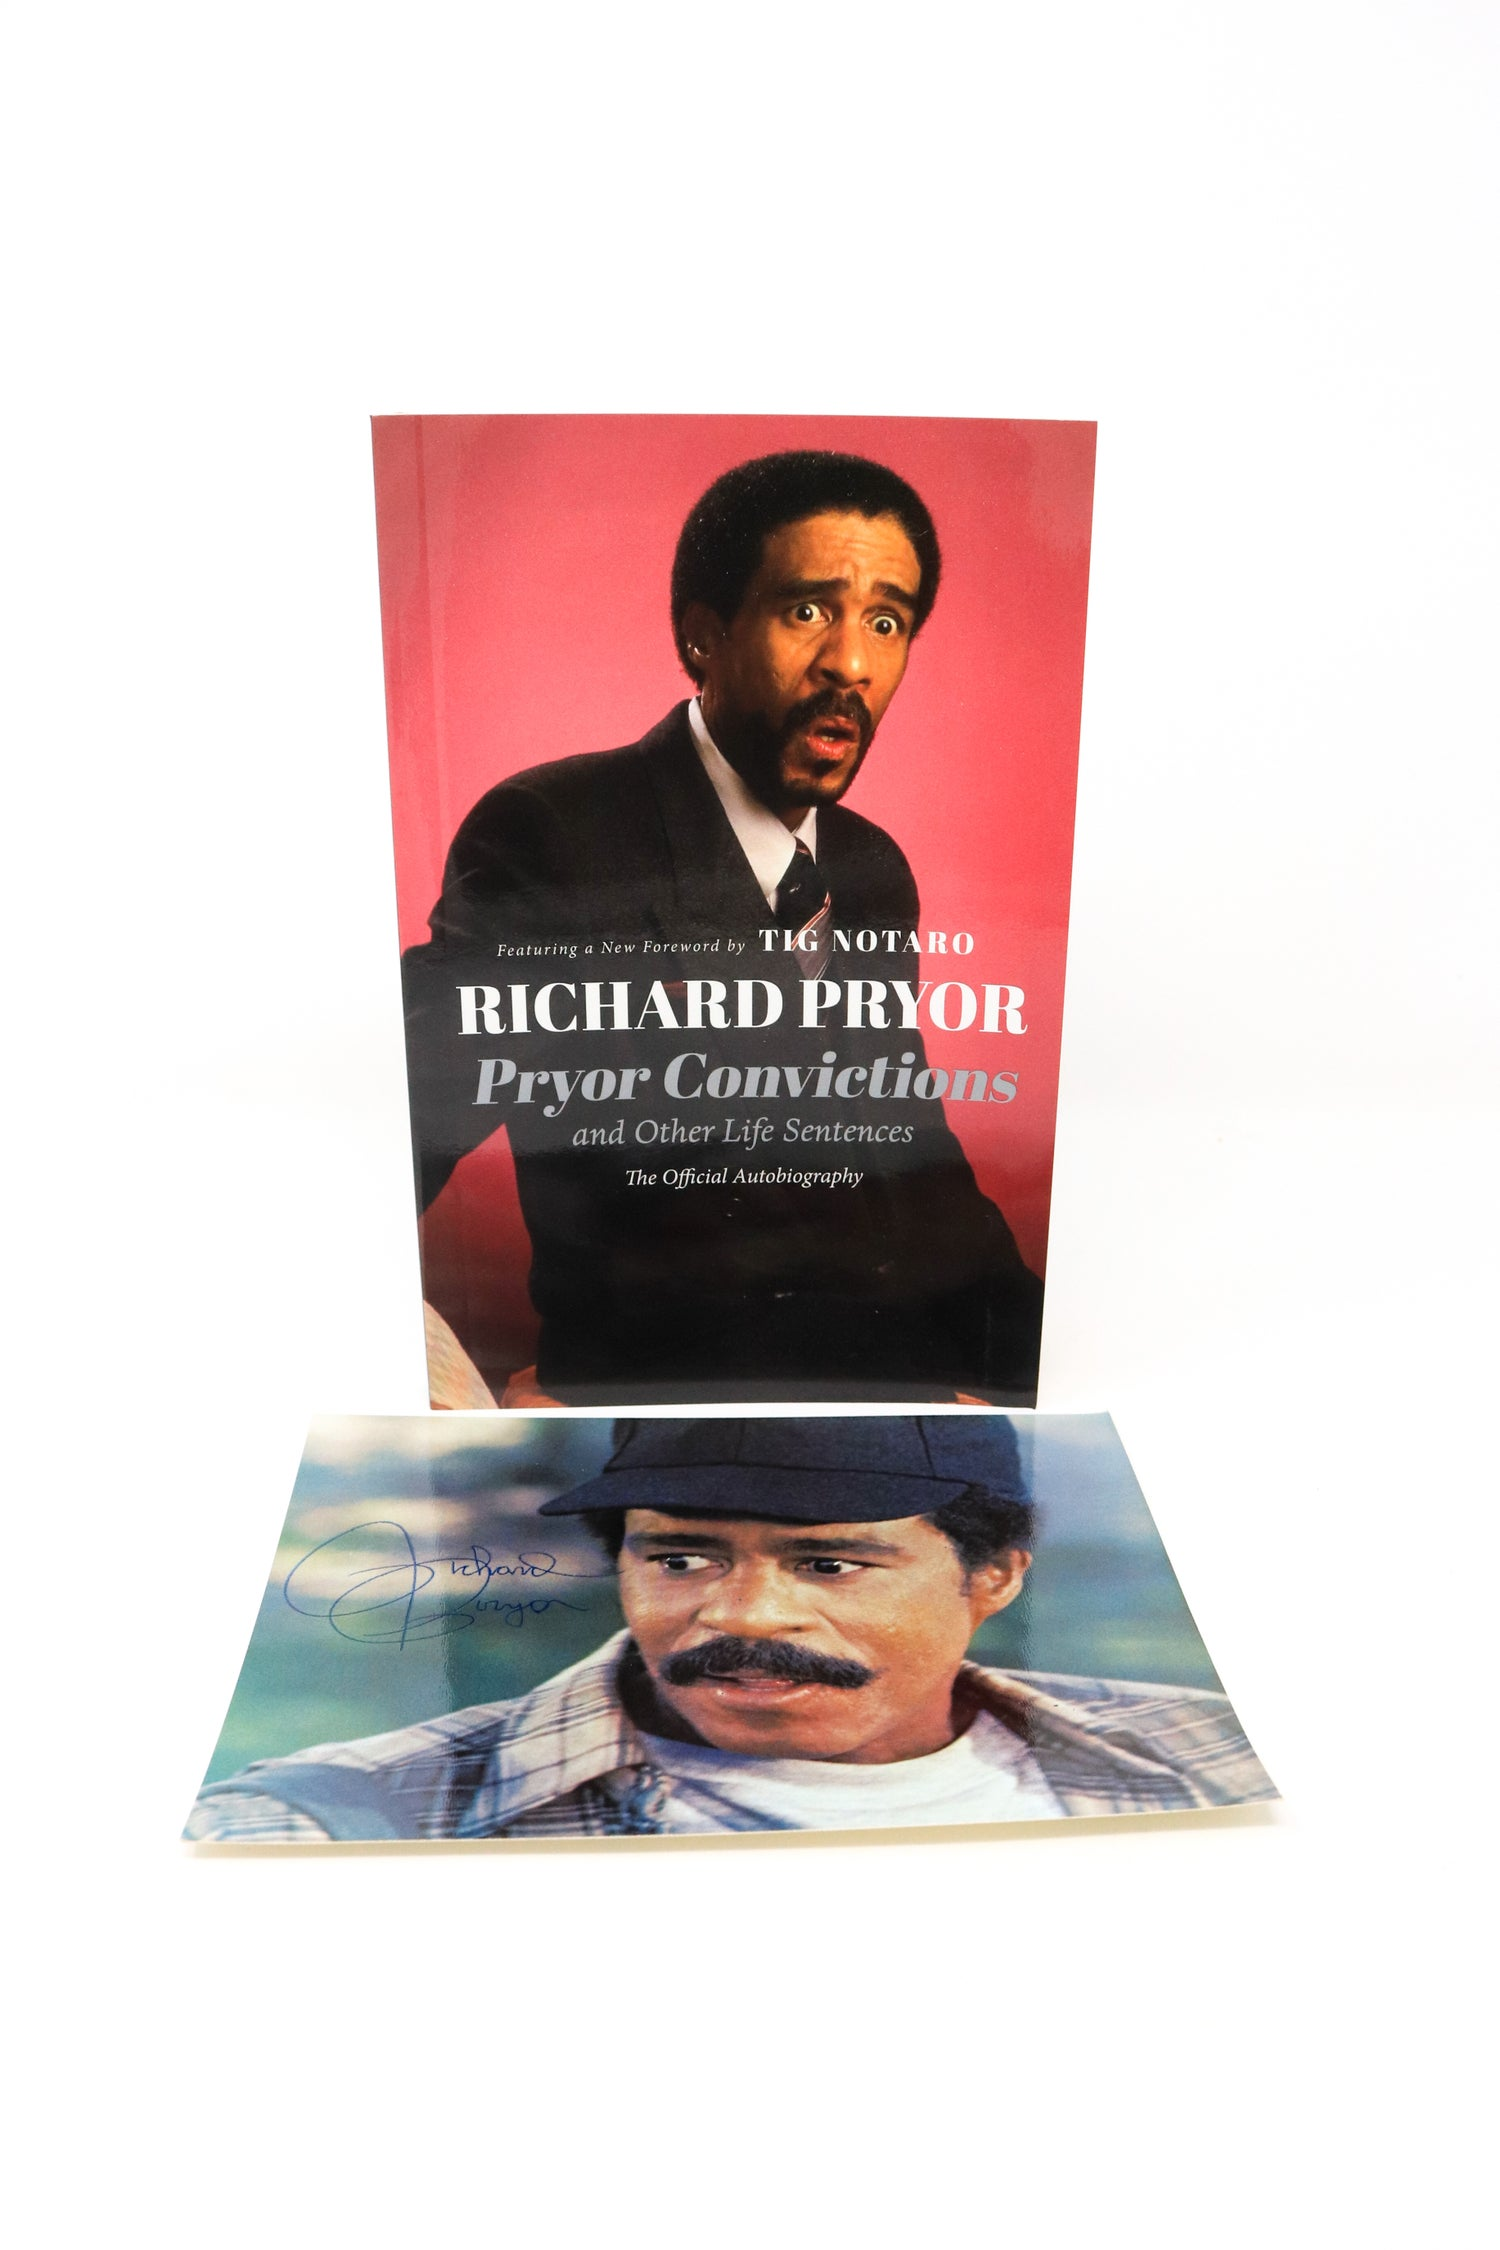 Image of Richard Pryor - Pryor Convictions Autobiography Book